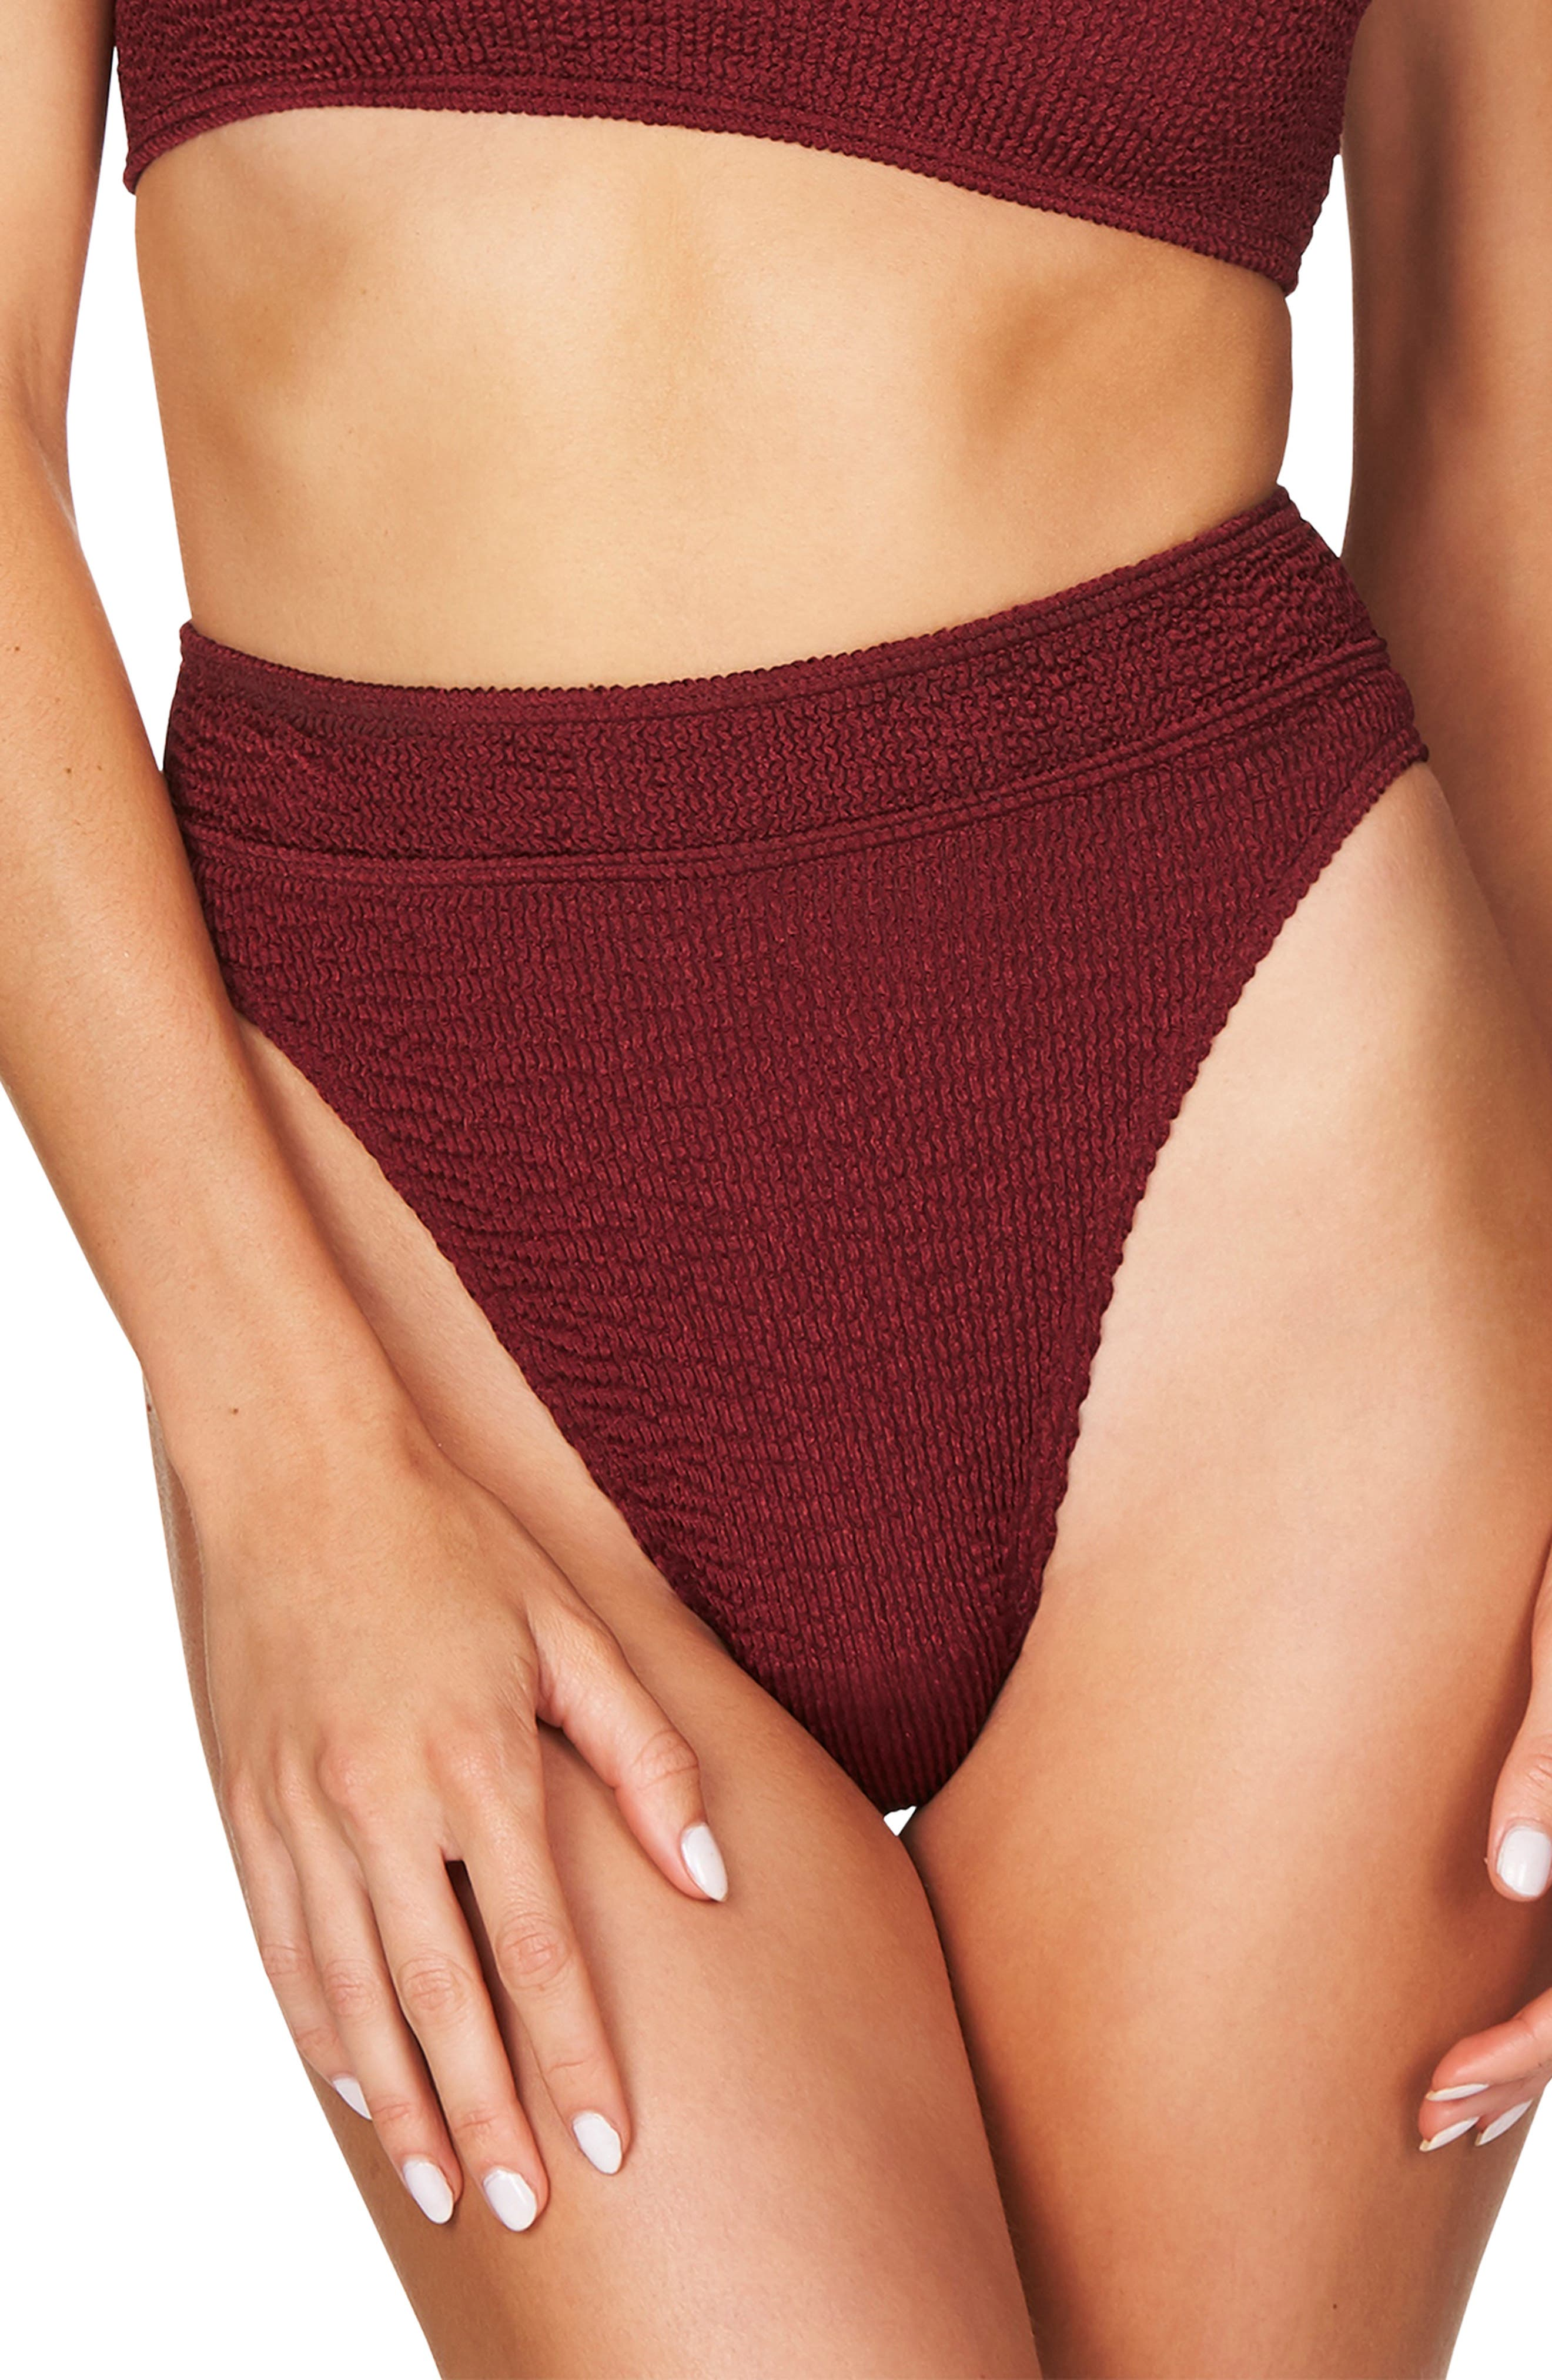 Bound By Bond-Eye The Savannah High Cut Ribbed Bikini Bottoms, Size One Size - Red